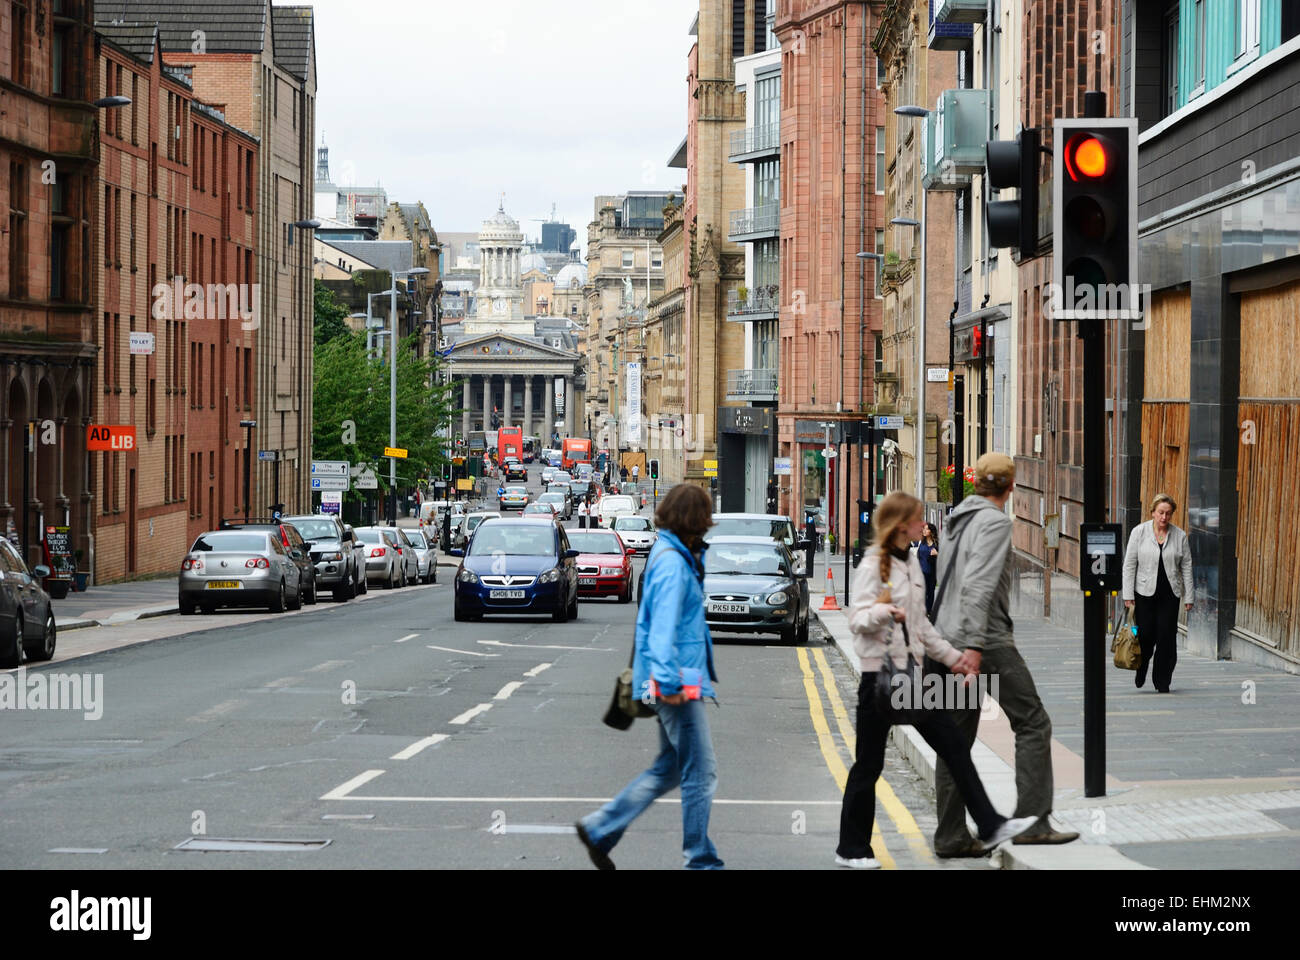 Glasgow. Merchant City - Stock Image